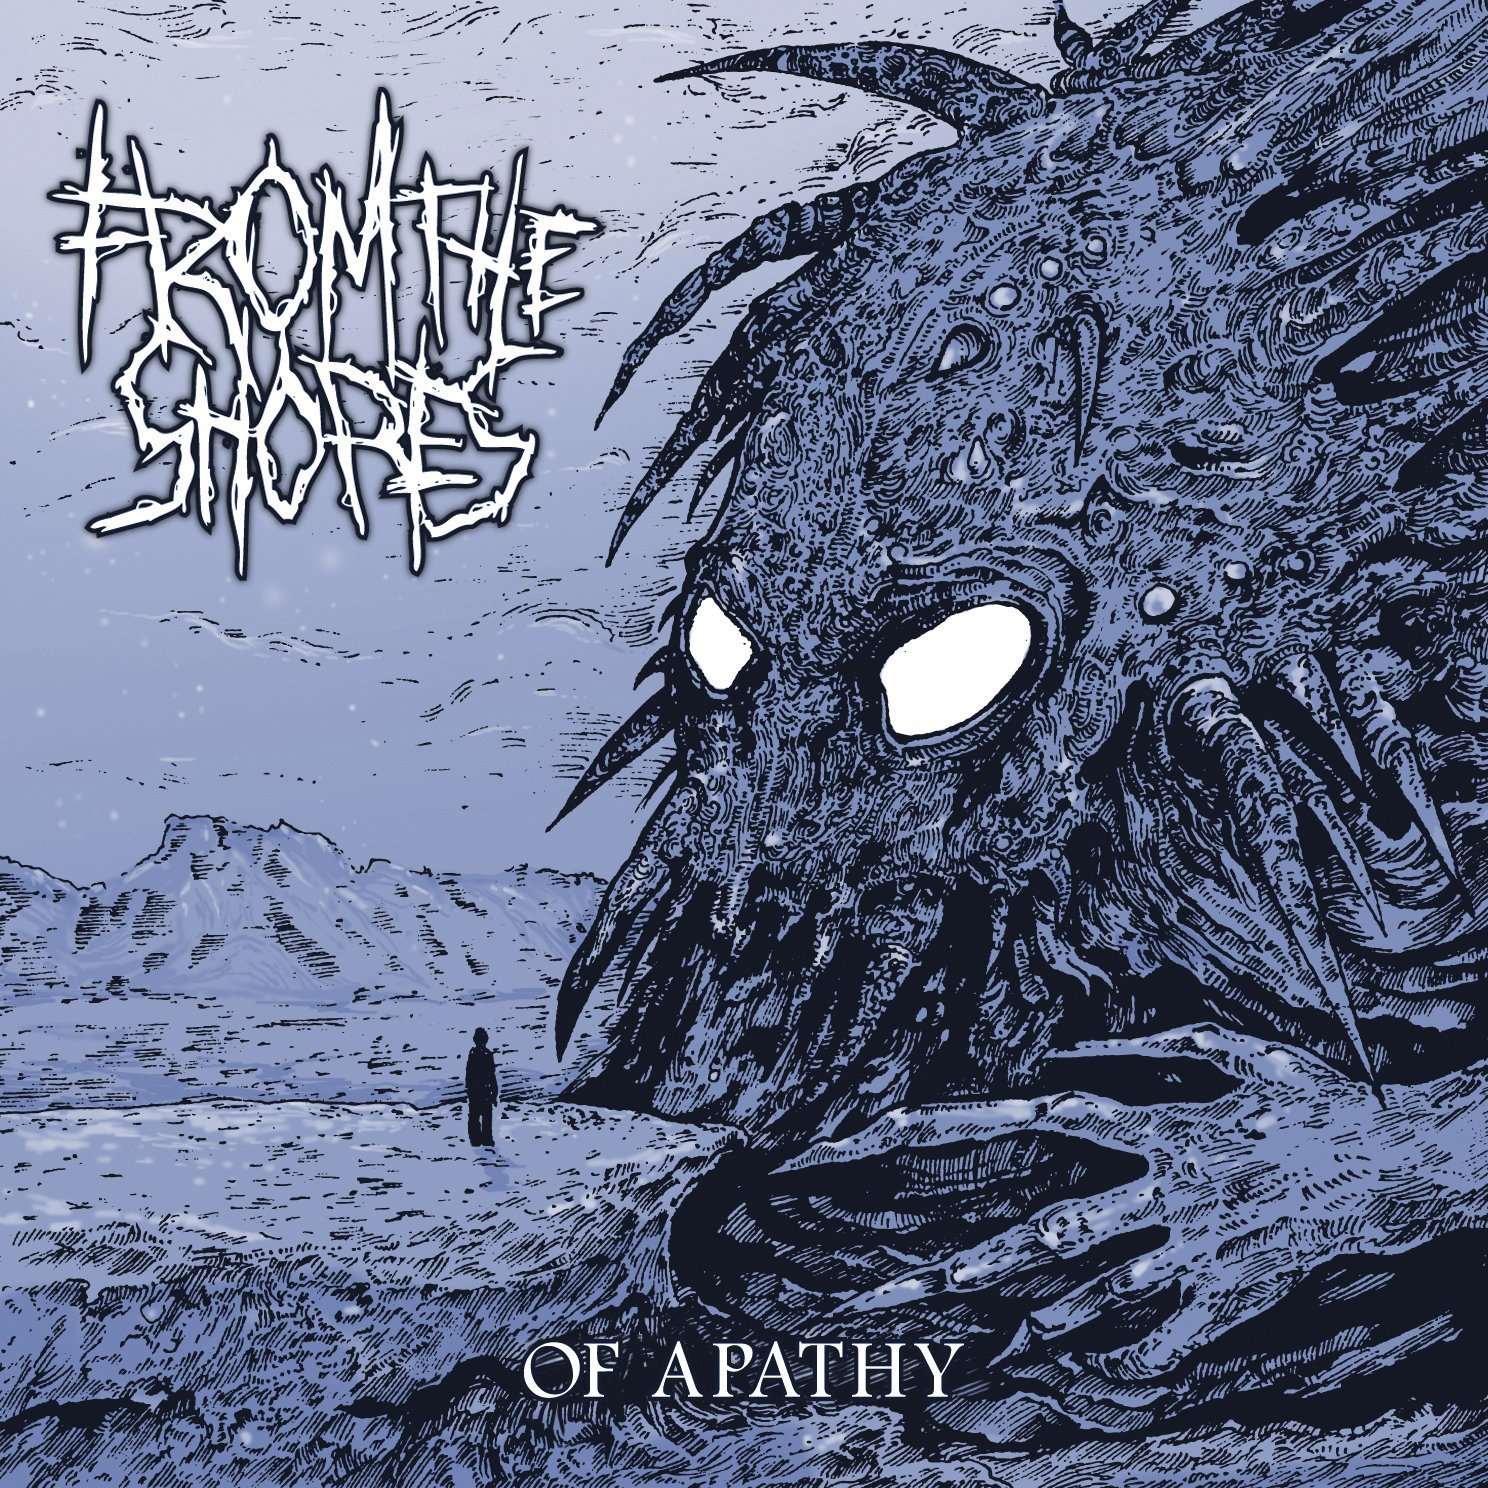 CD : From the Shores - Of Apathy (CD)